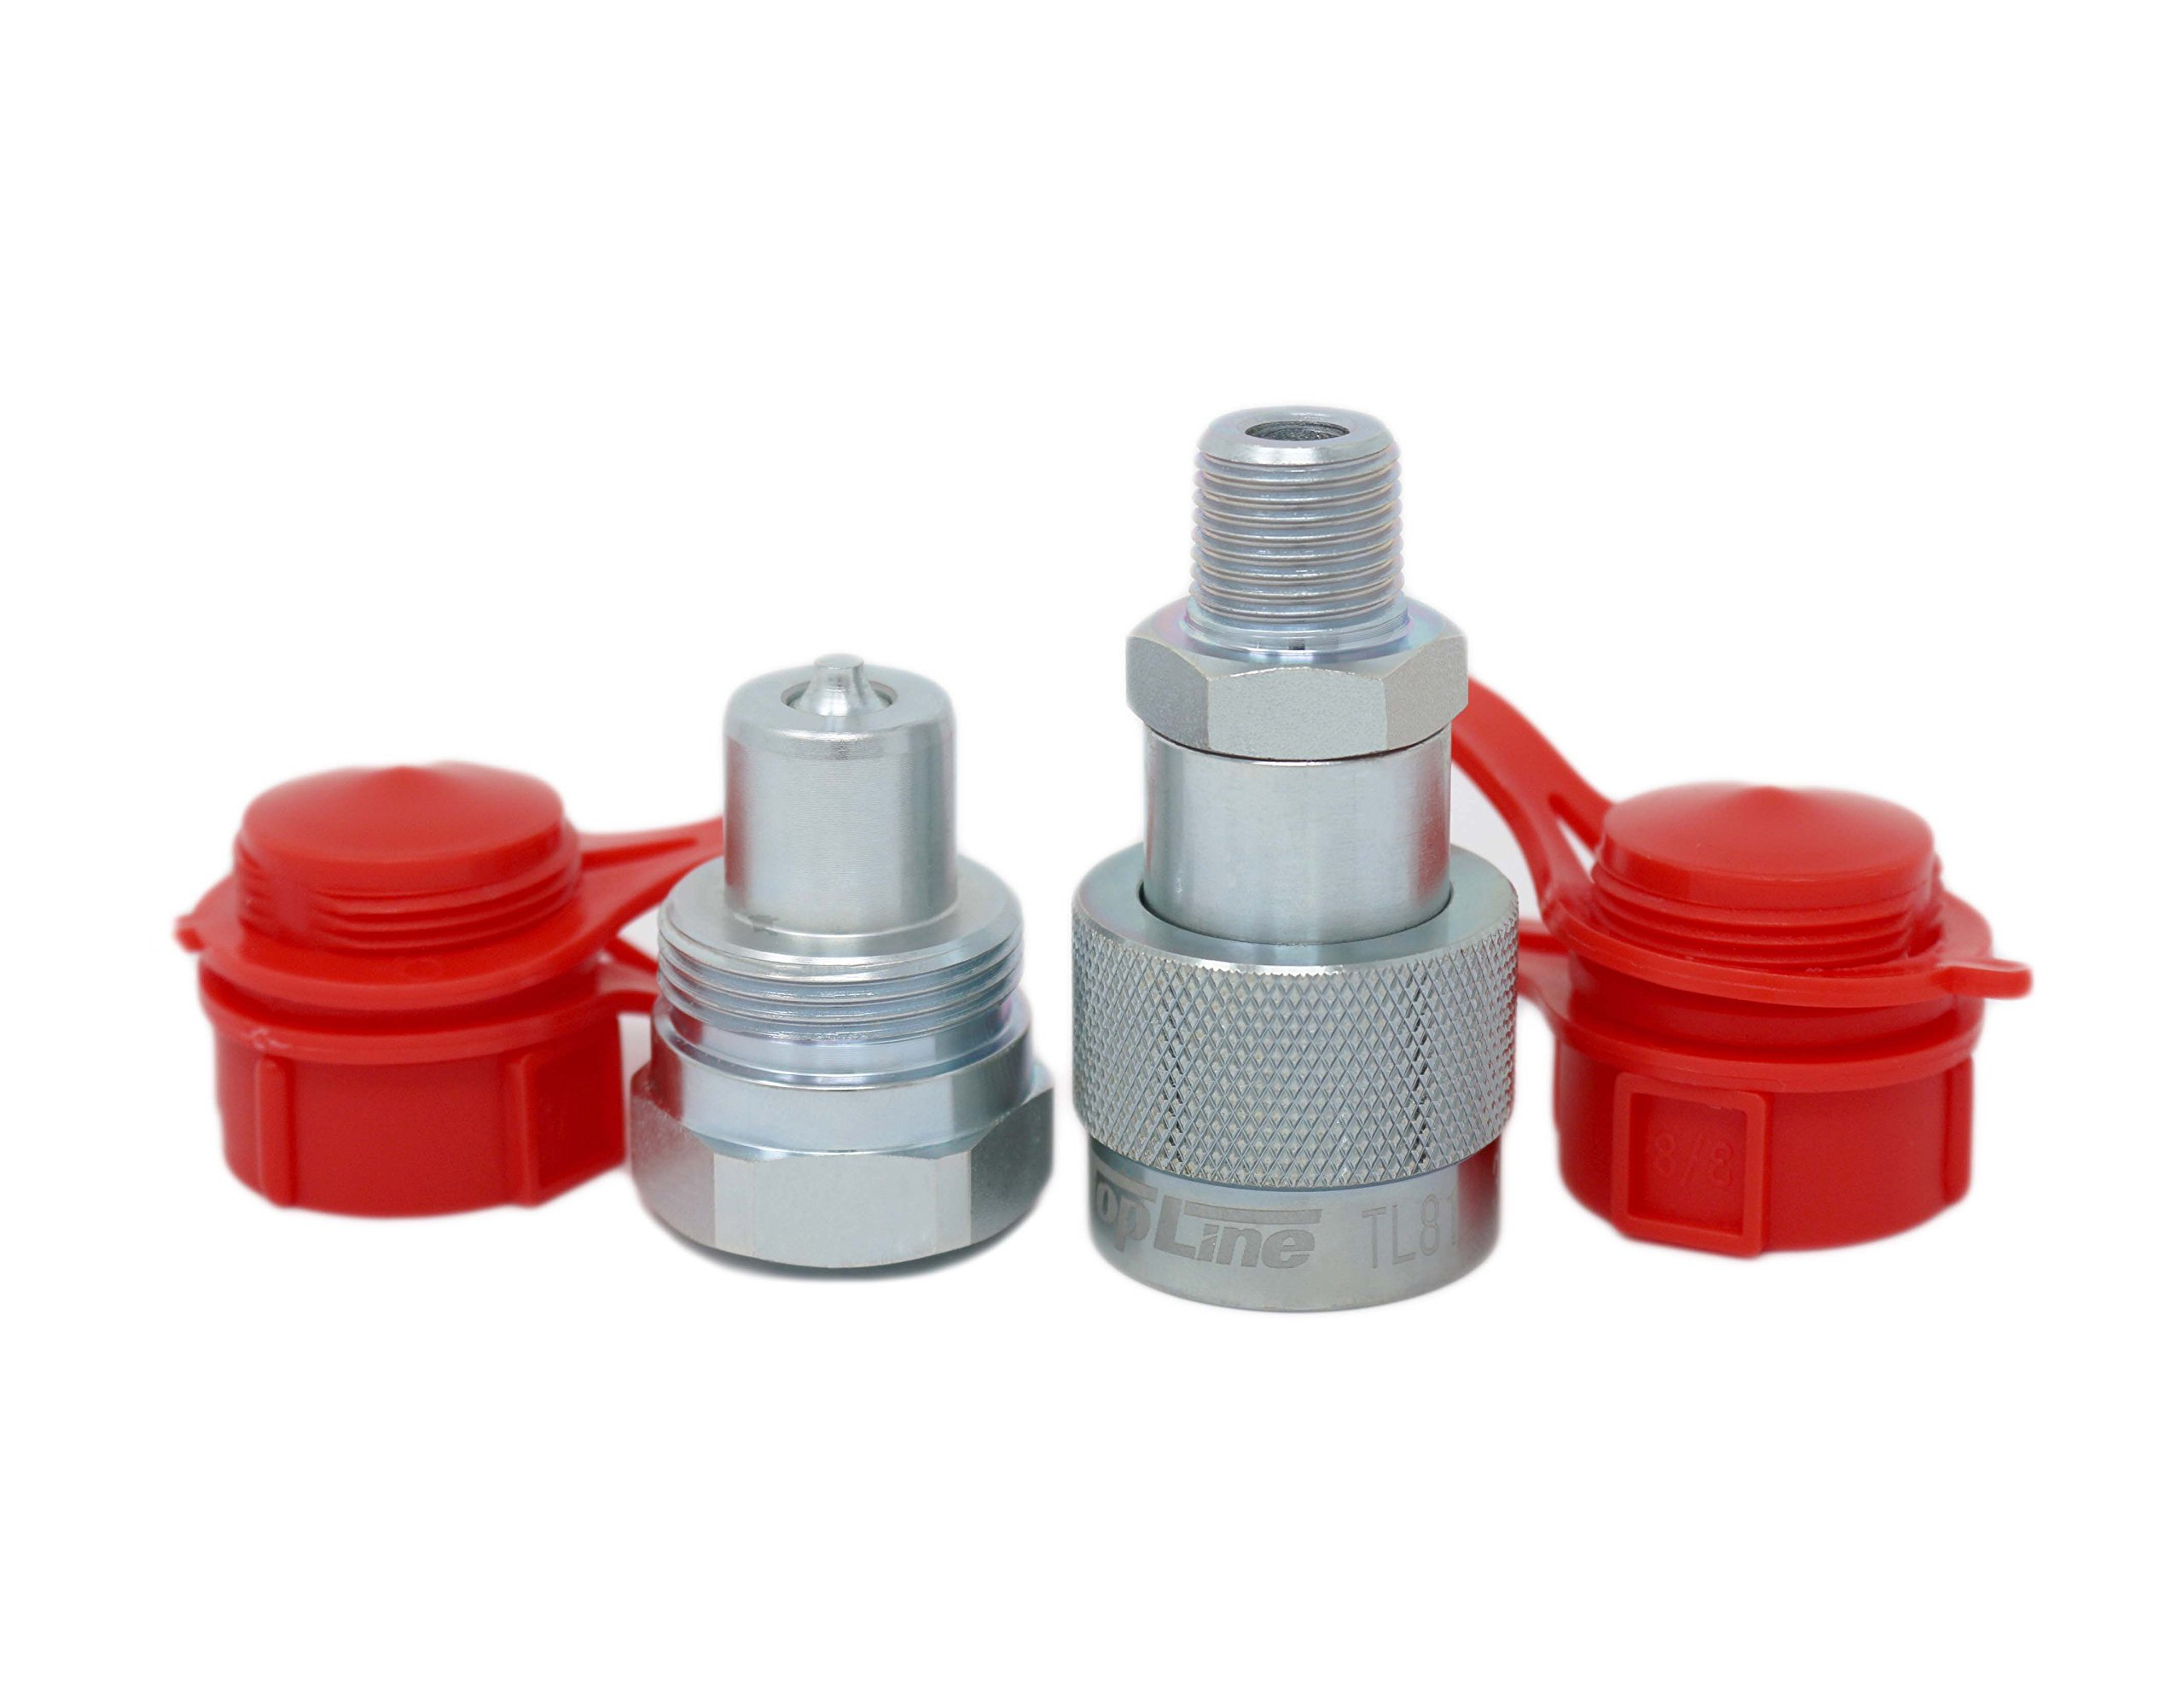 TL81 3/8'' NPT 10,000 PSI High Pressure Enerpac Interchange Hydraulic Couplers Coupling Set 3/8'' Body w/Dust Caps